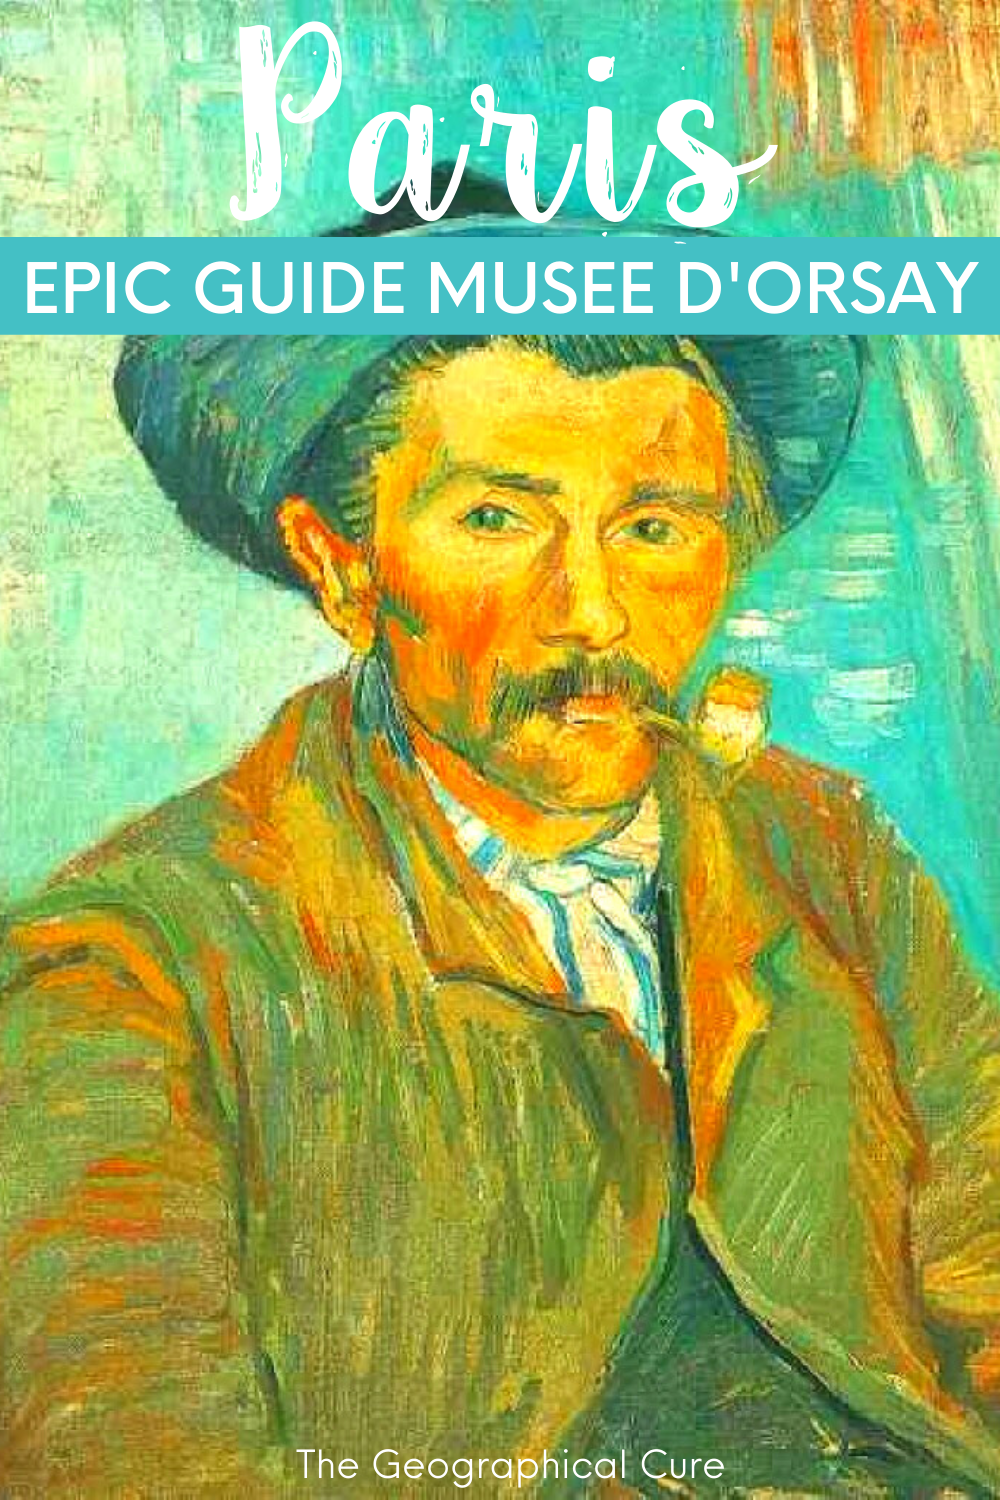 Tour the Musee d'Orsay, the World's Favorite Museu